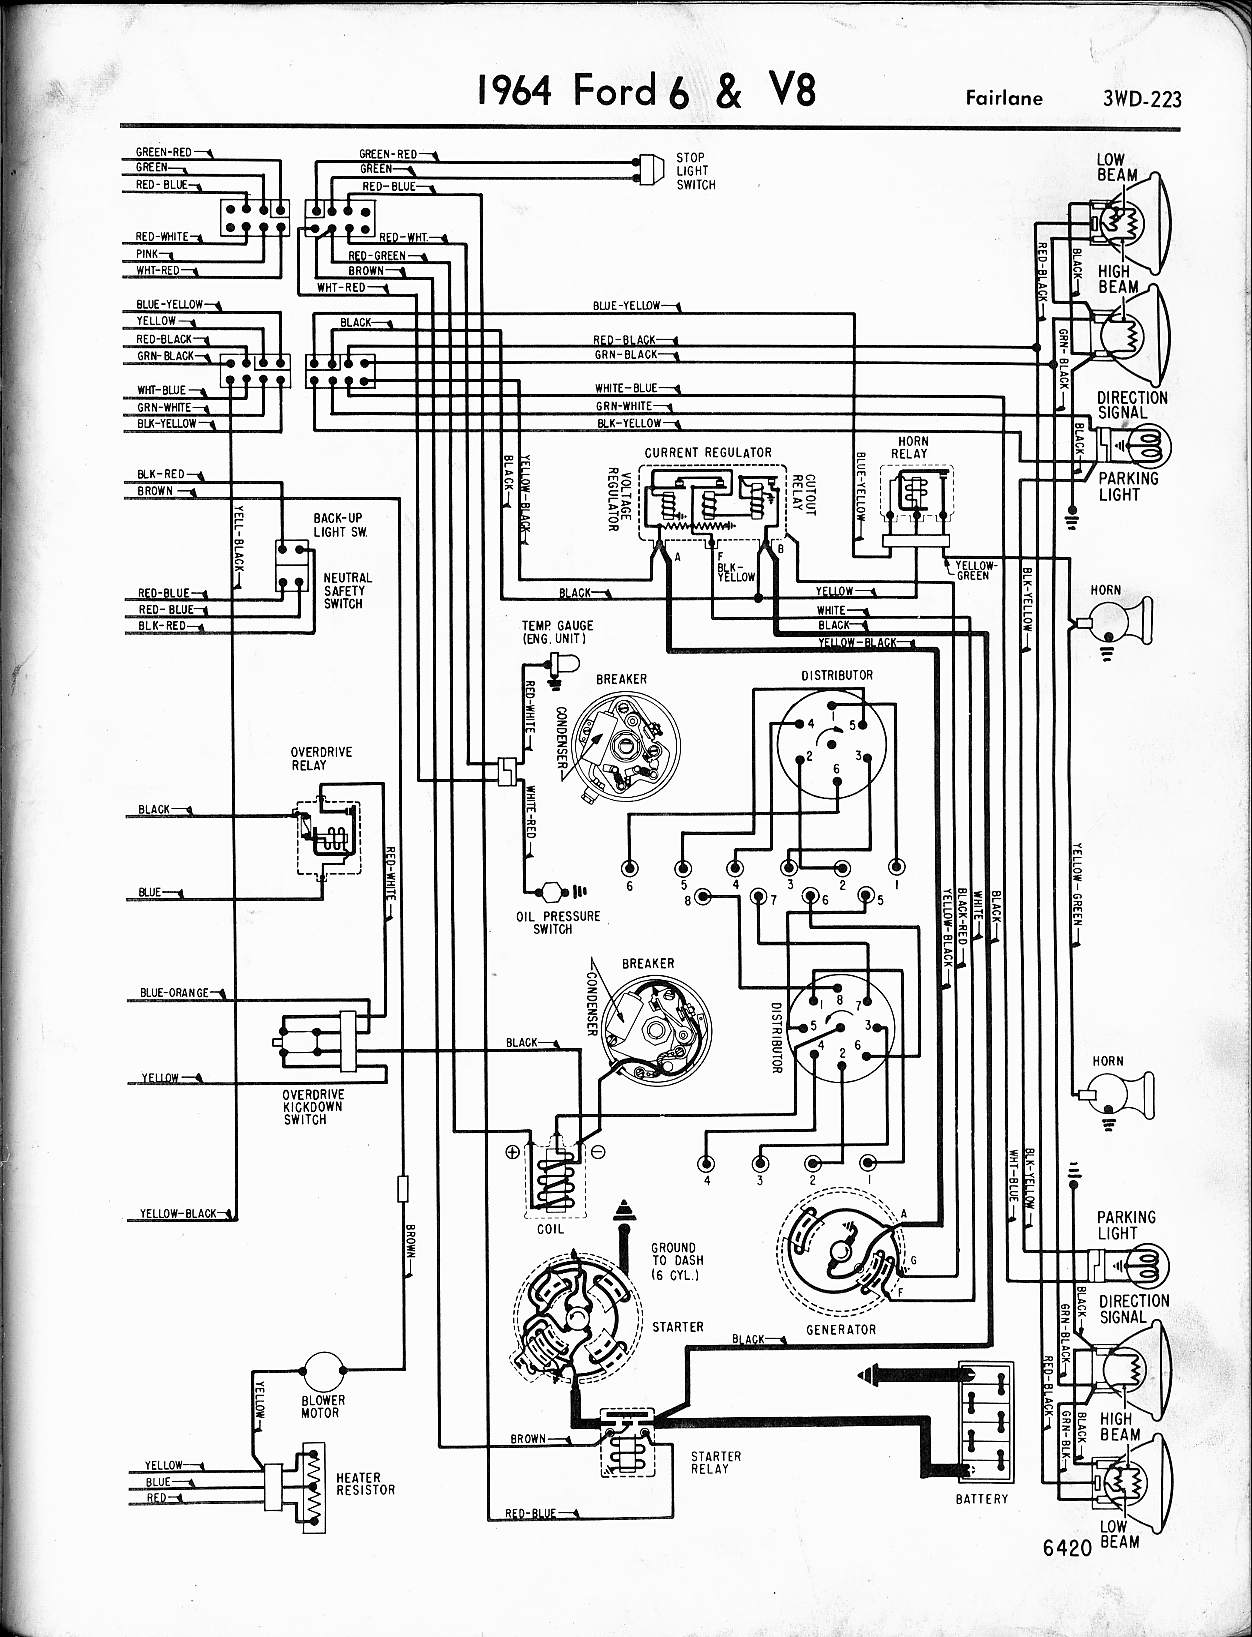 64 F100 Wiring Diagram Manual E Books 65 Ford Mustang